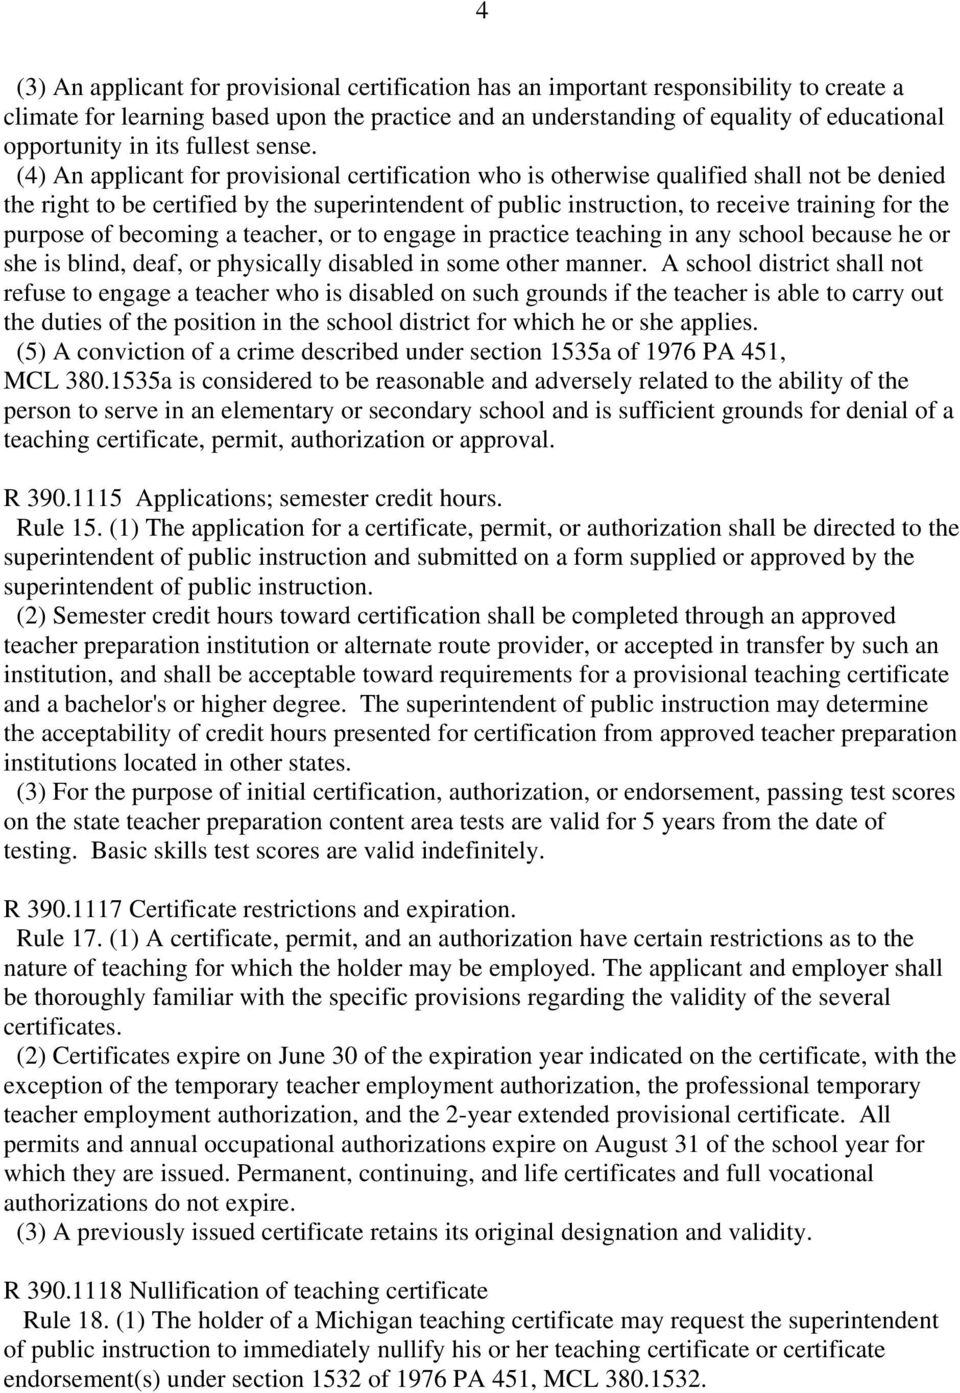 (4) An applicant for provisional certification who is otherwise qualified shall not be denied the right to be certified by the superintendent of public instruction, to receive training for the